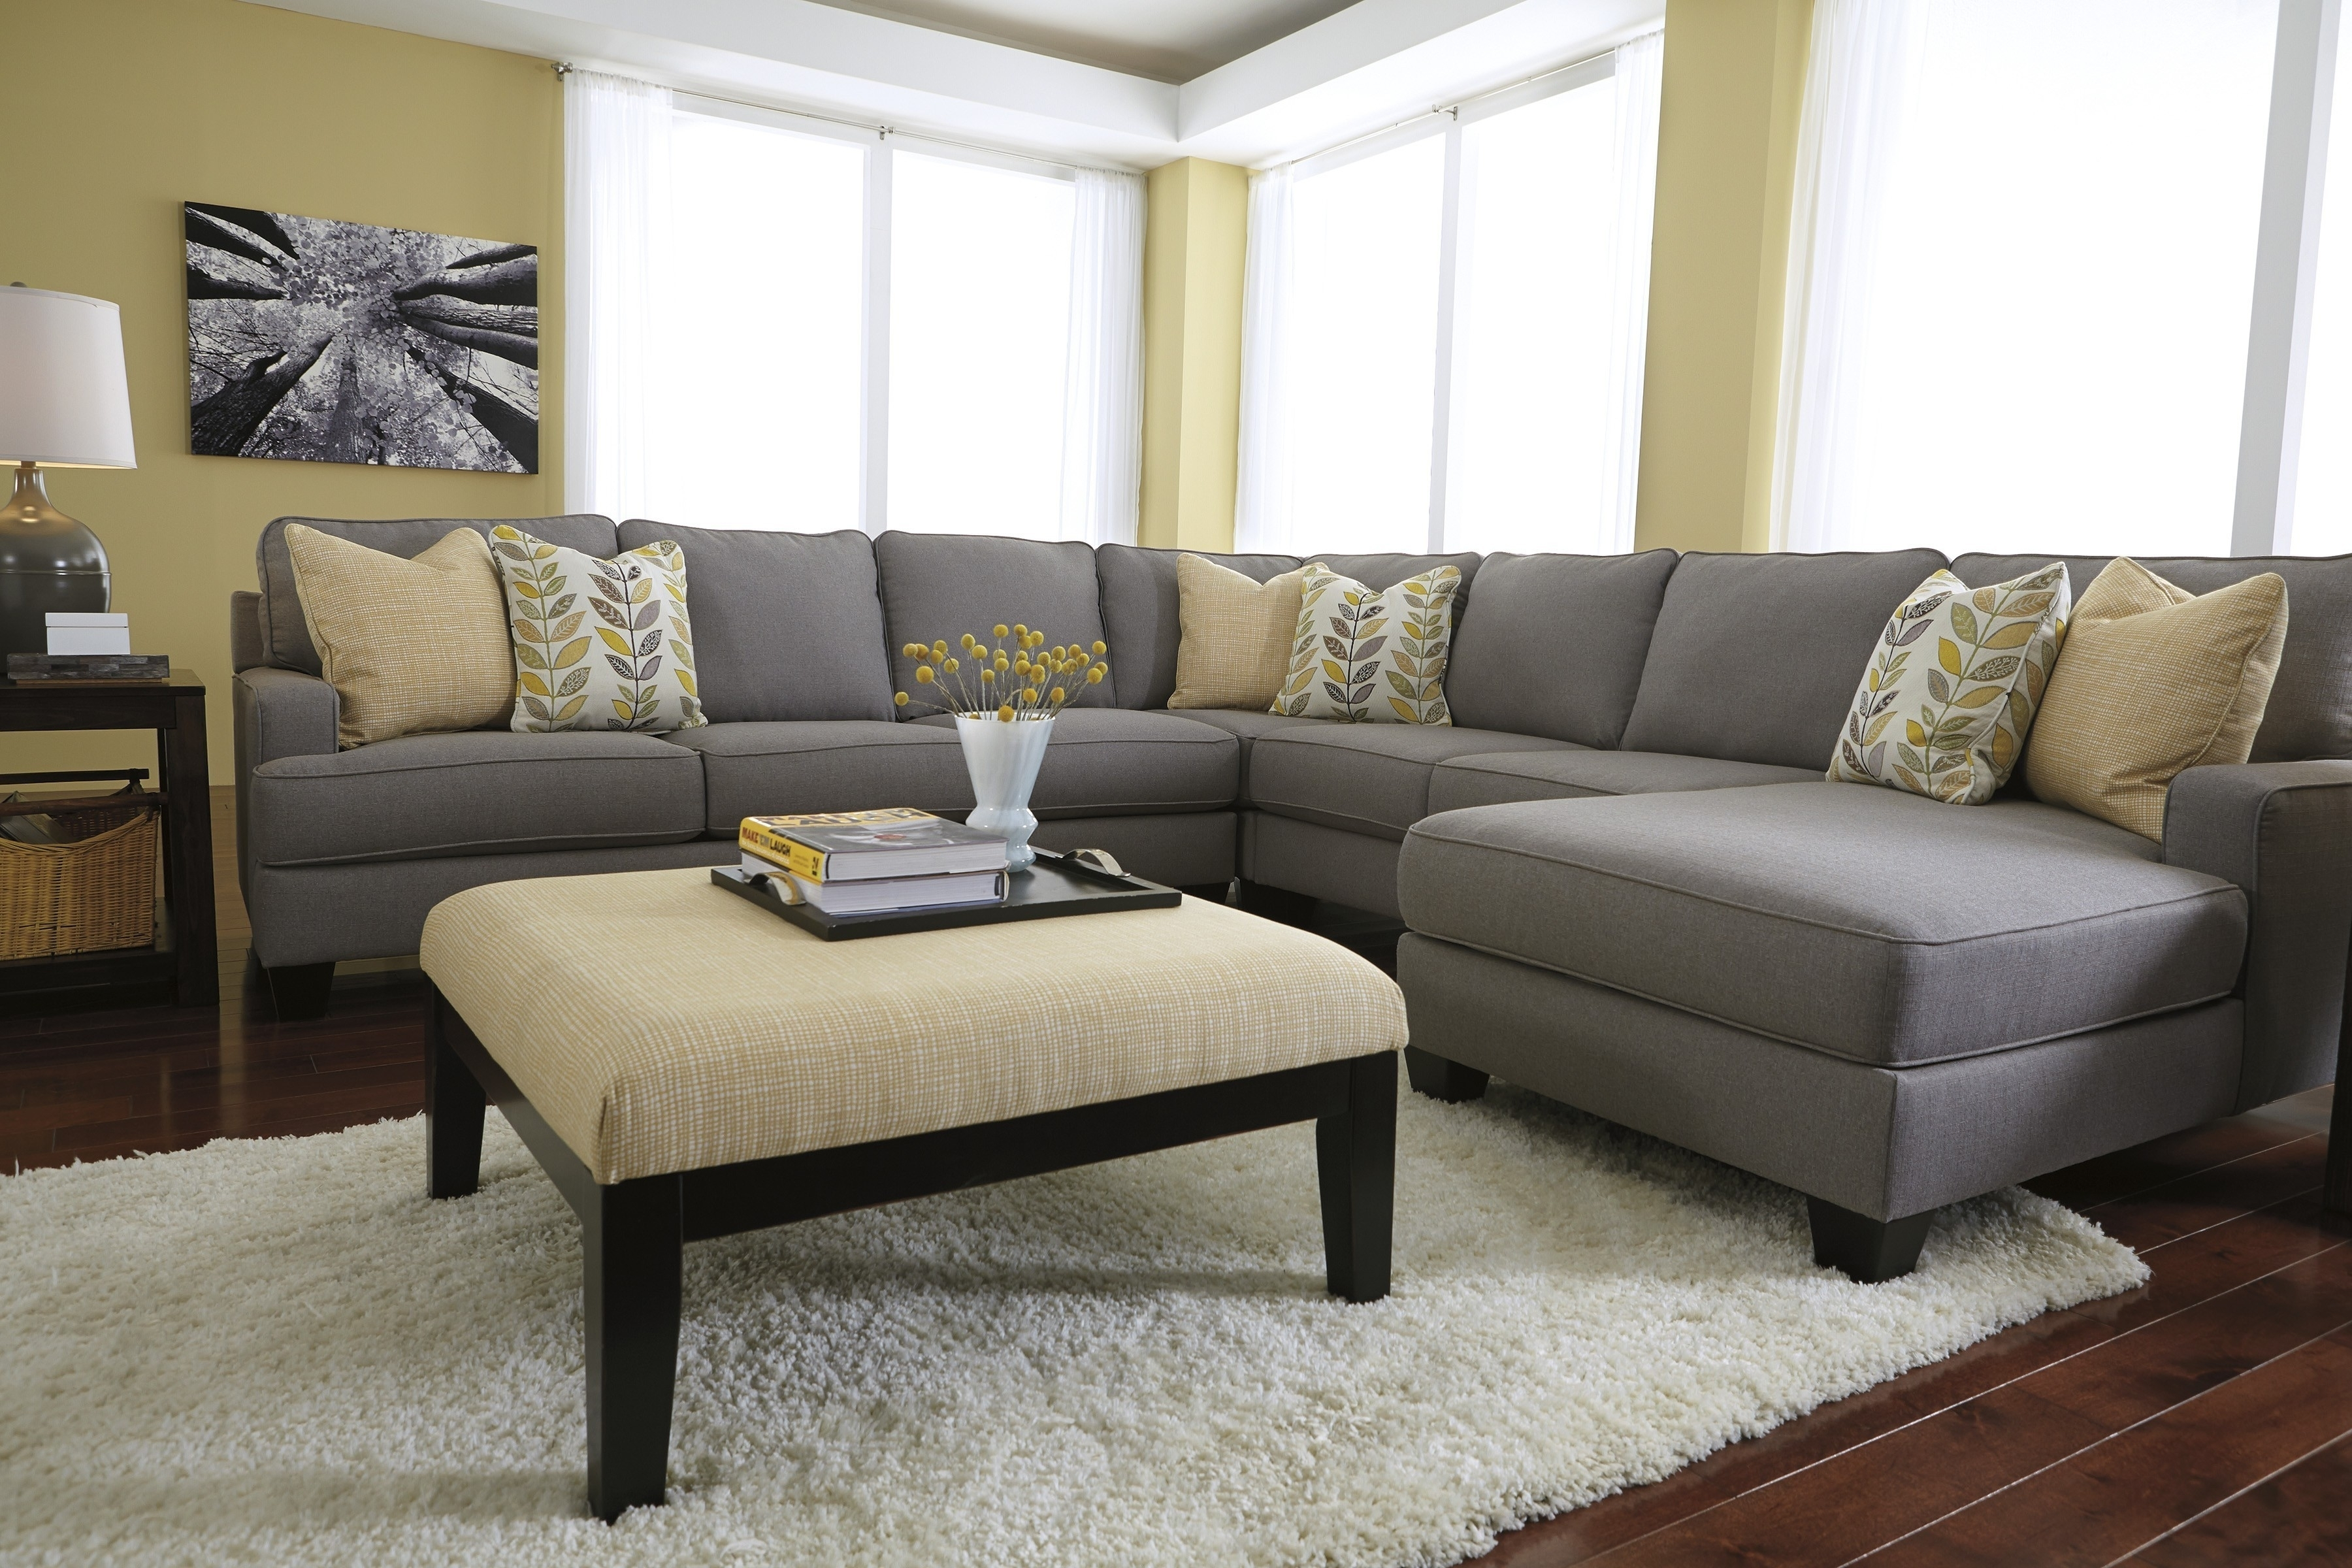 Beautiful Sectional Sofa With Oversized Ottoman 88 For Your pertaining to Sectional Sofas With Oversized Ottoman (Image 2 of 15)